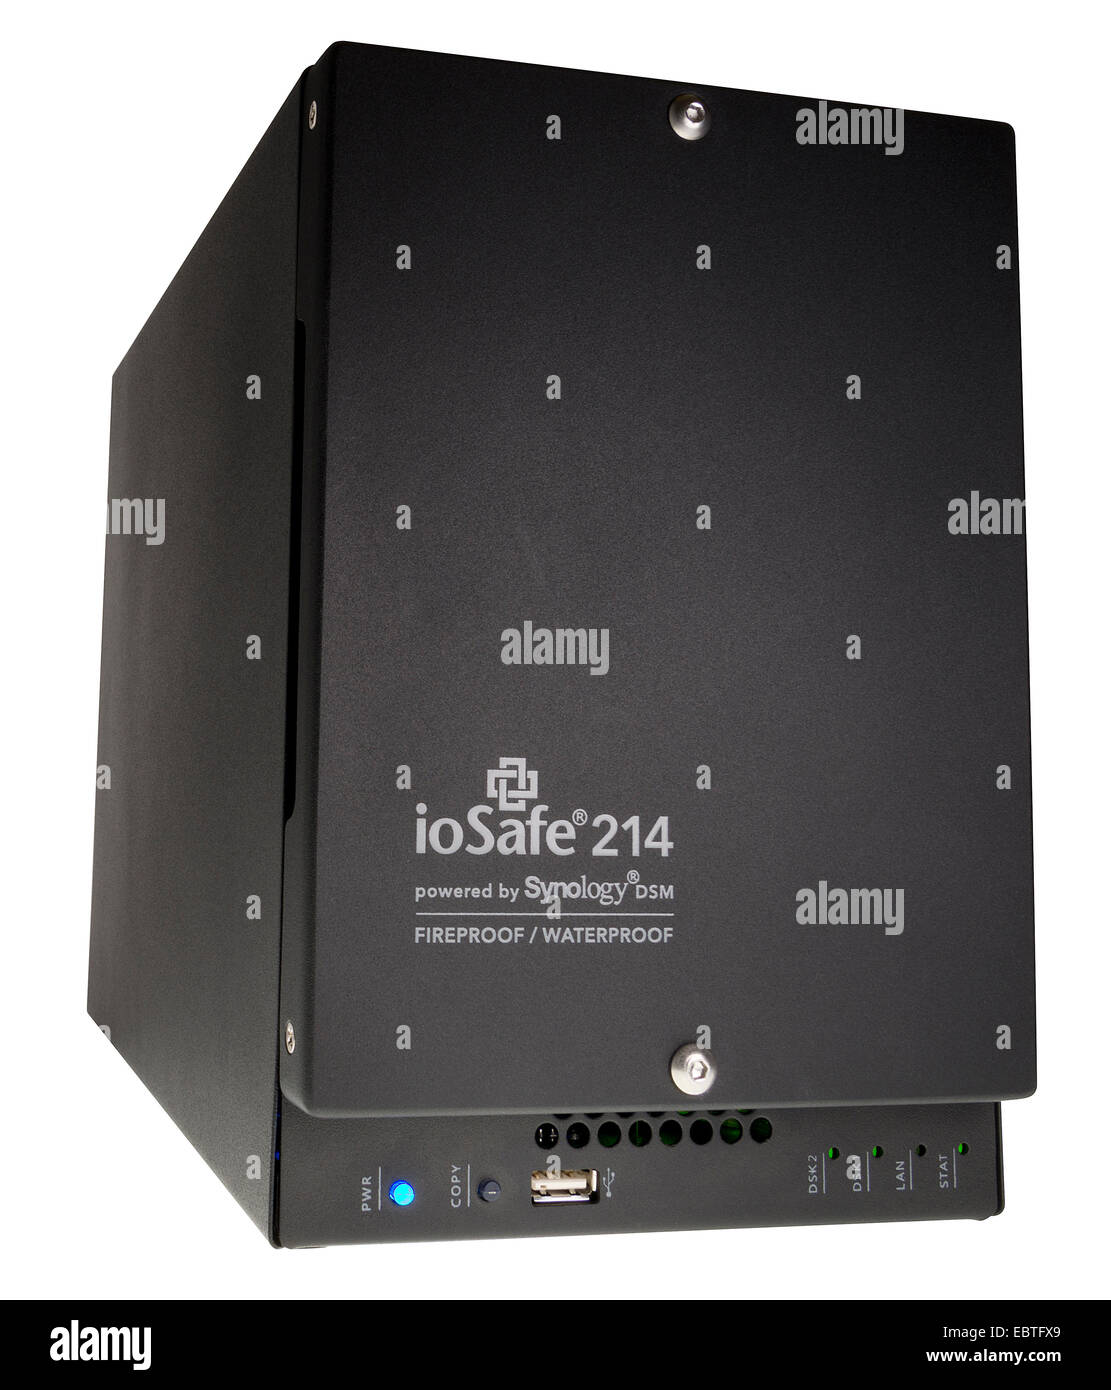 ioSafe 214 NAS (Network Attached Storage) Raid, powered by Synology DiscStation DSM. - Stock Image